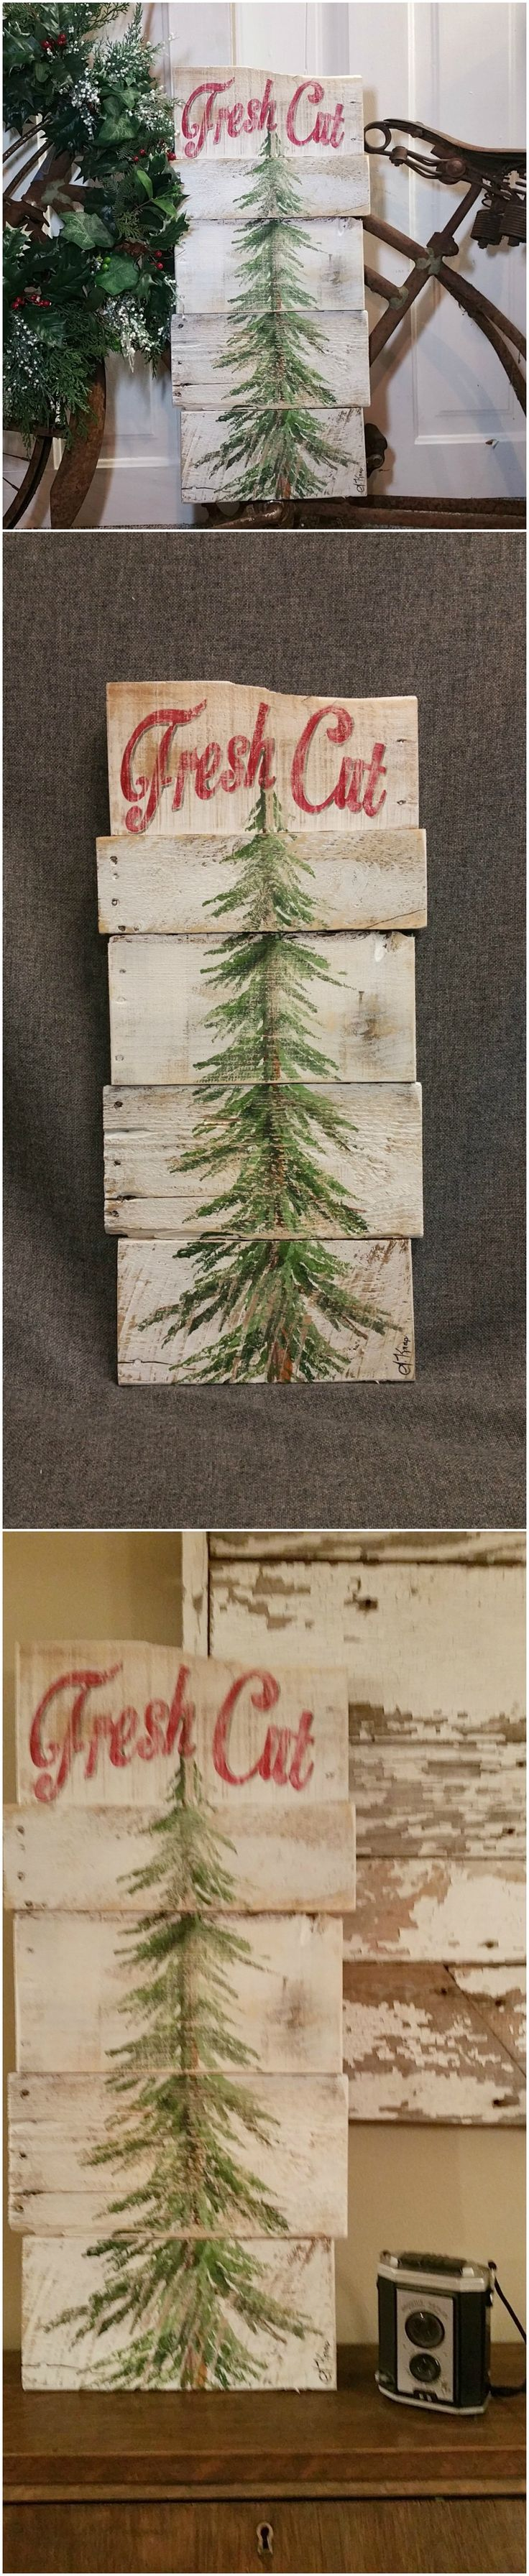 "Item details 5 out of 5 stars.      (151) reviews Shipping & Policies Christmas tree for sale, white washed, Fresh Cut, Pine tree Reclaimed Pallet Art, christmas Hand painted, Shabbt chic, Distressed  Original Acrylic painting on reclaimed Pallet boards. This unique piece is 24"" x apprx. 12""  This heavily aged Christmas tree sign is on a white-washed background with the words ""Fresh Cut"" painted in red across the top. It is perfect for a personalized rustic touch to your Christmas…"